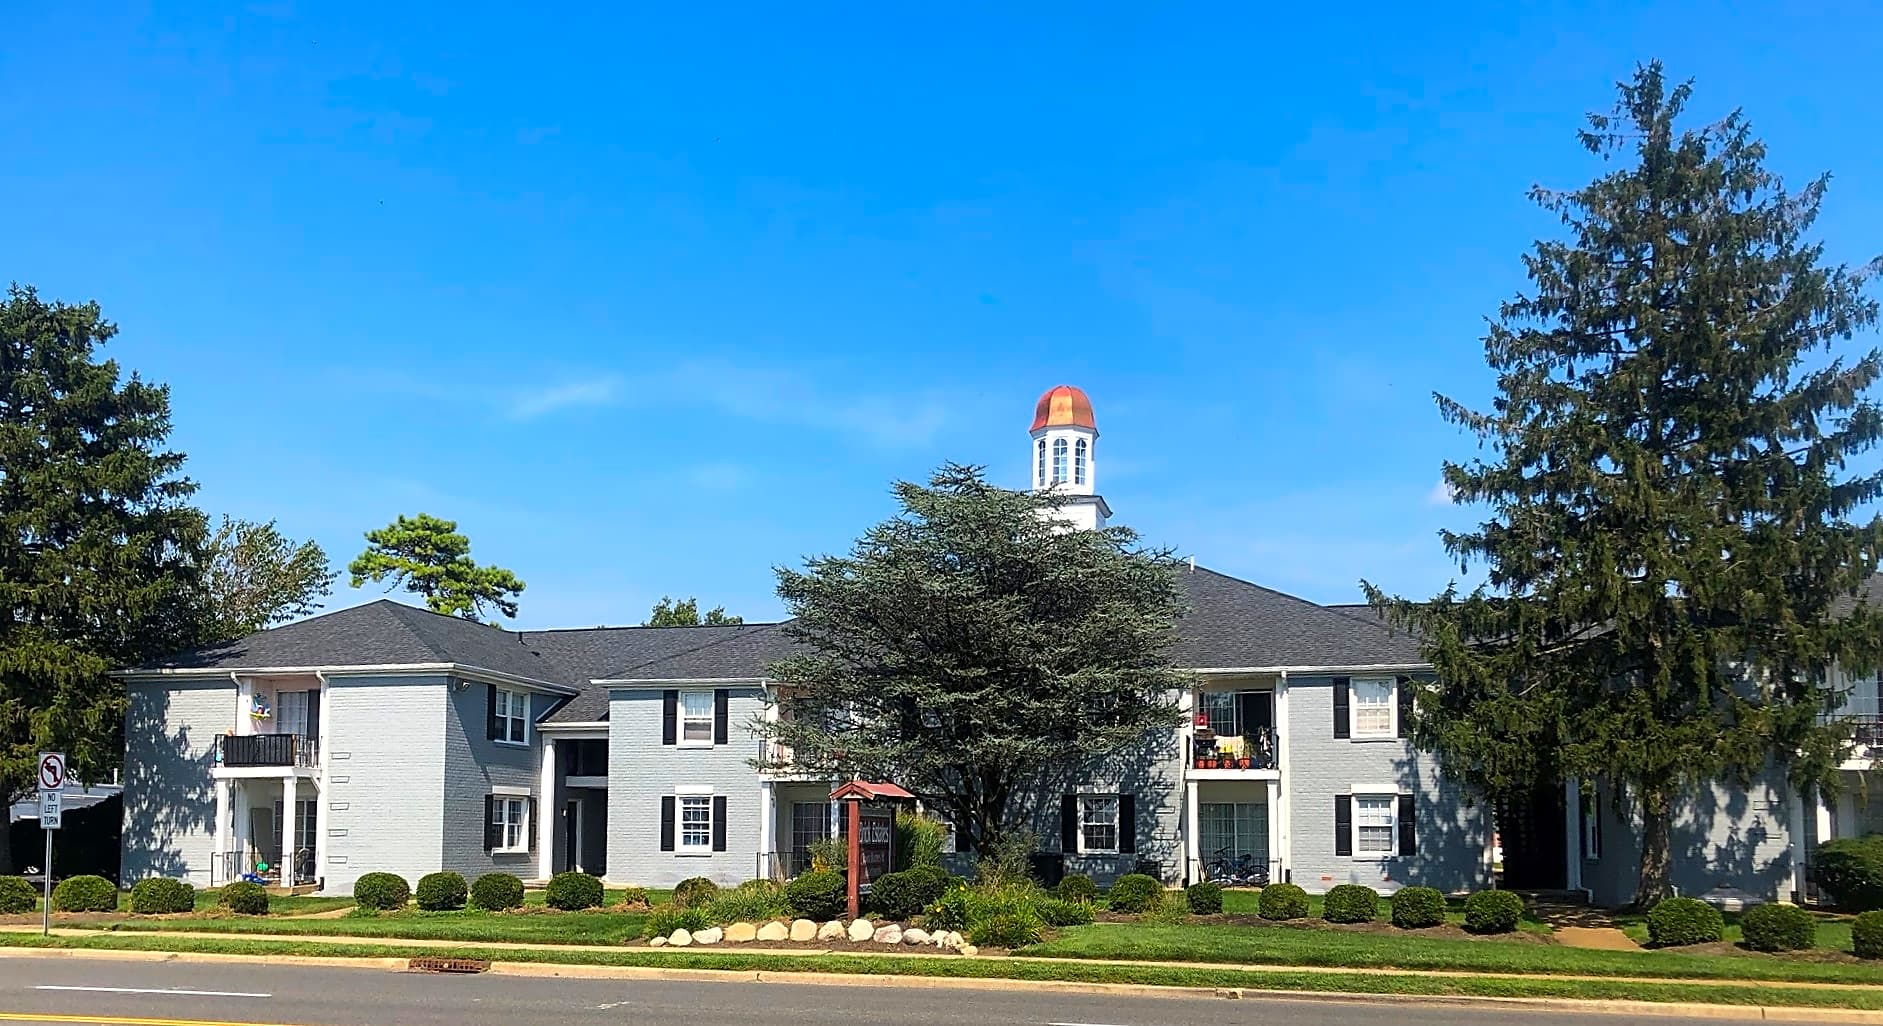 Apartments Near Ocean County Vocational-Technical School Brick Estates for Ocean County Vocational-Technical School Students in Toms River, NJ